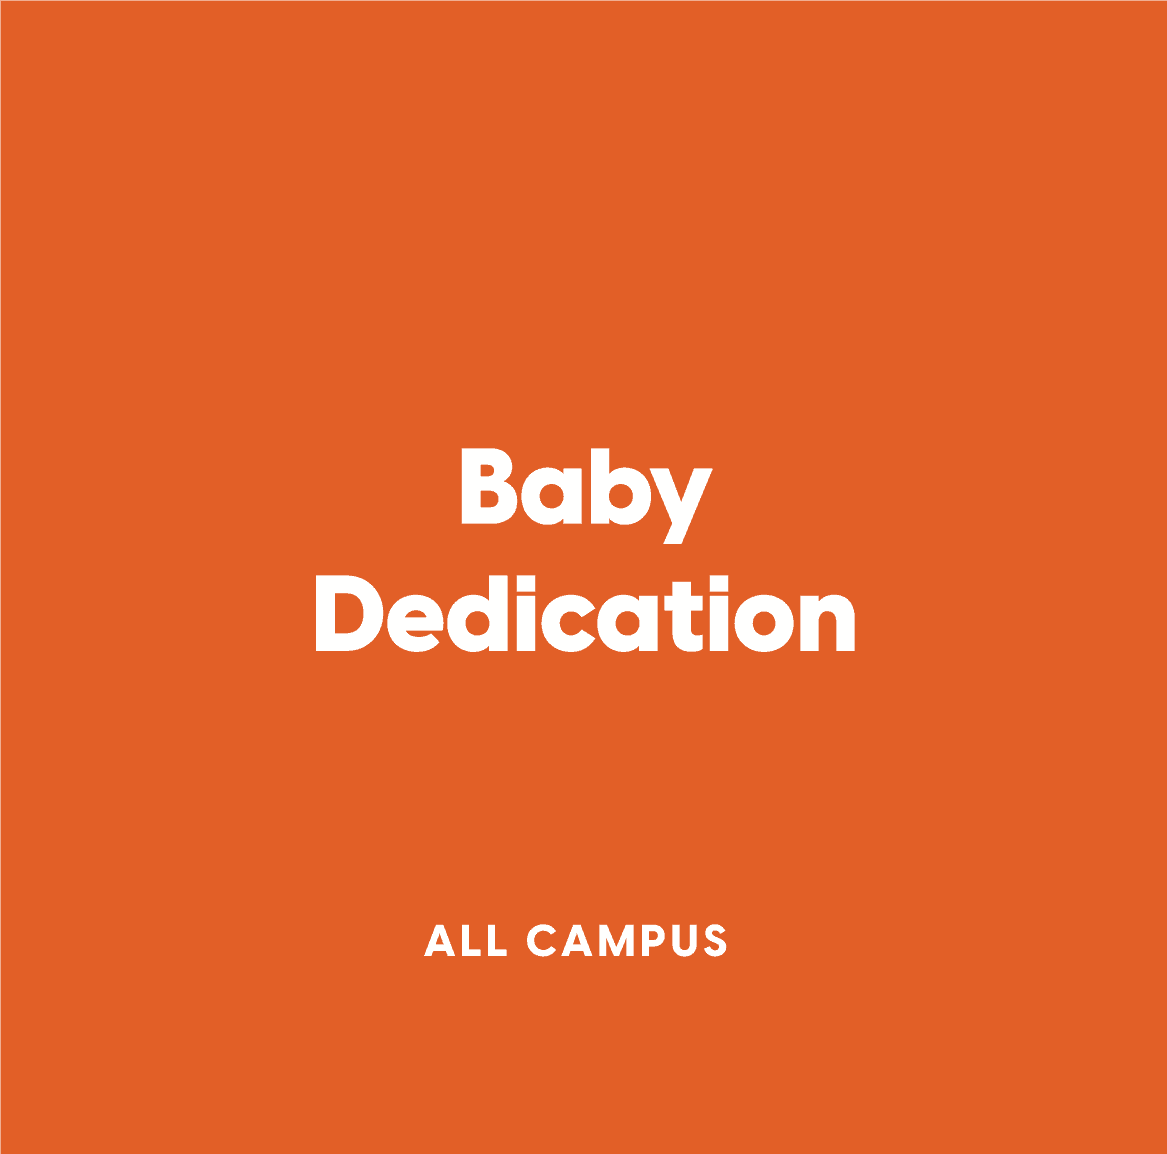 All-Campus Baby Dedication